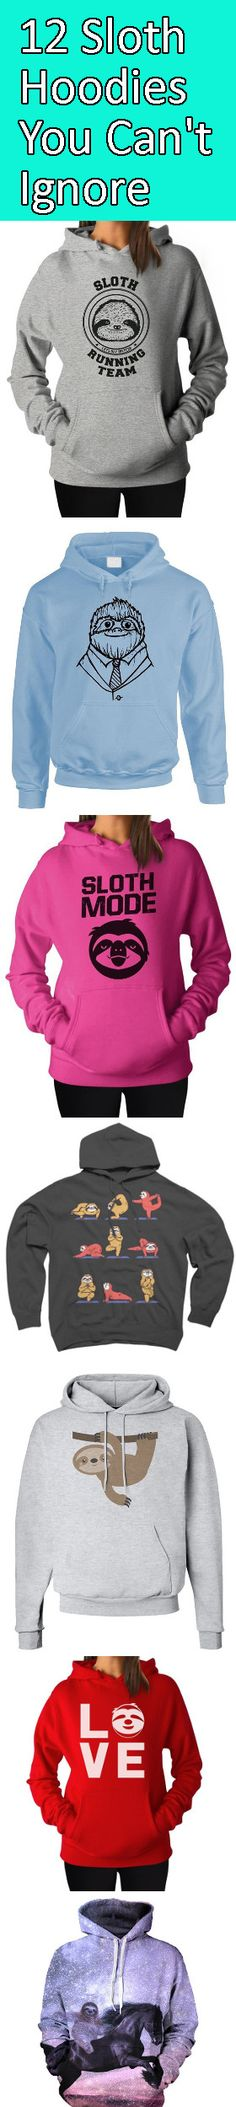 Have you ever felt a bit chilly and wondered how you could warm yourself up? Do you want to warm up in style whilst still expressing your wonderful love for sloths? Then we've got you covered with these 12 charming sloth hoodies! http://all-things-sloth.com/12-charming-sloth-hoodies-you-cant-ignore/